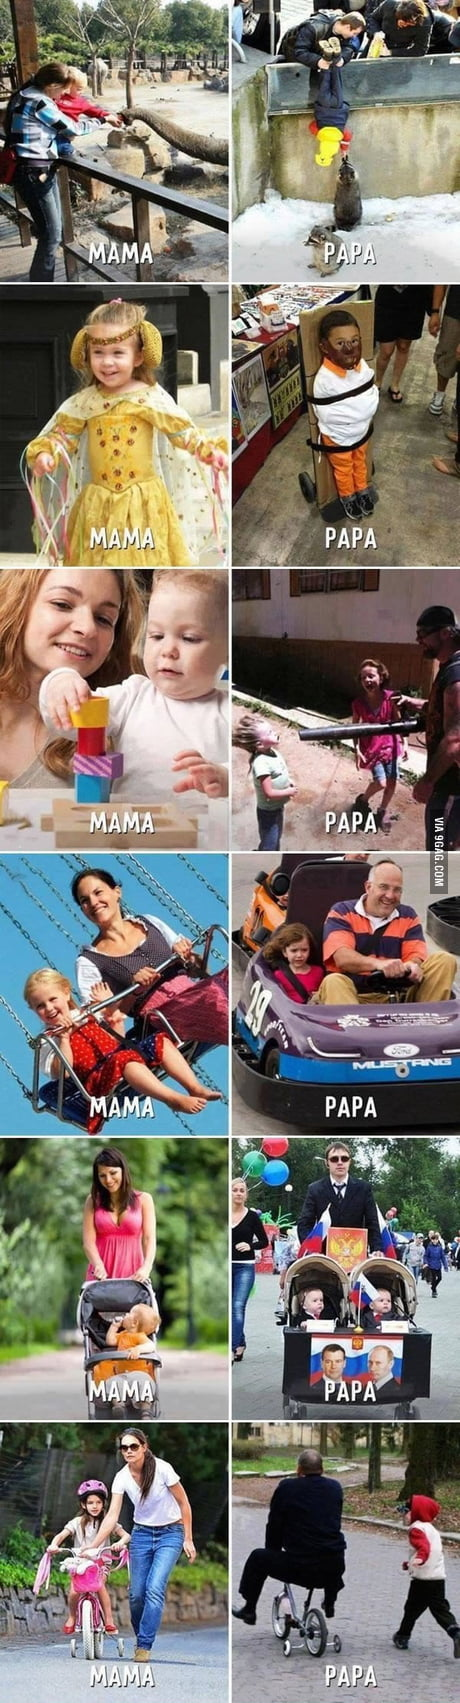 The difference between moms and dads